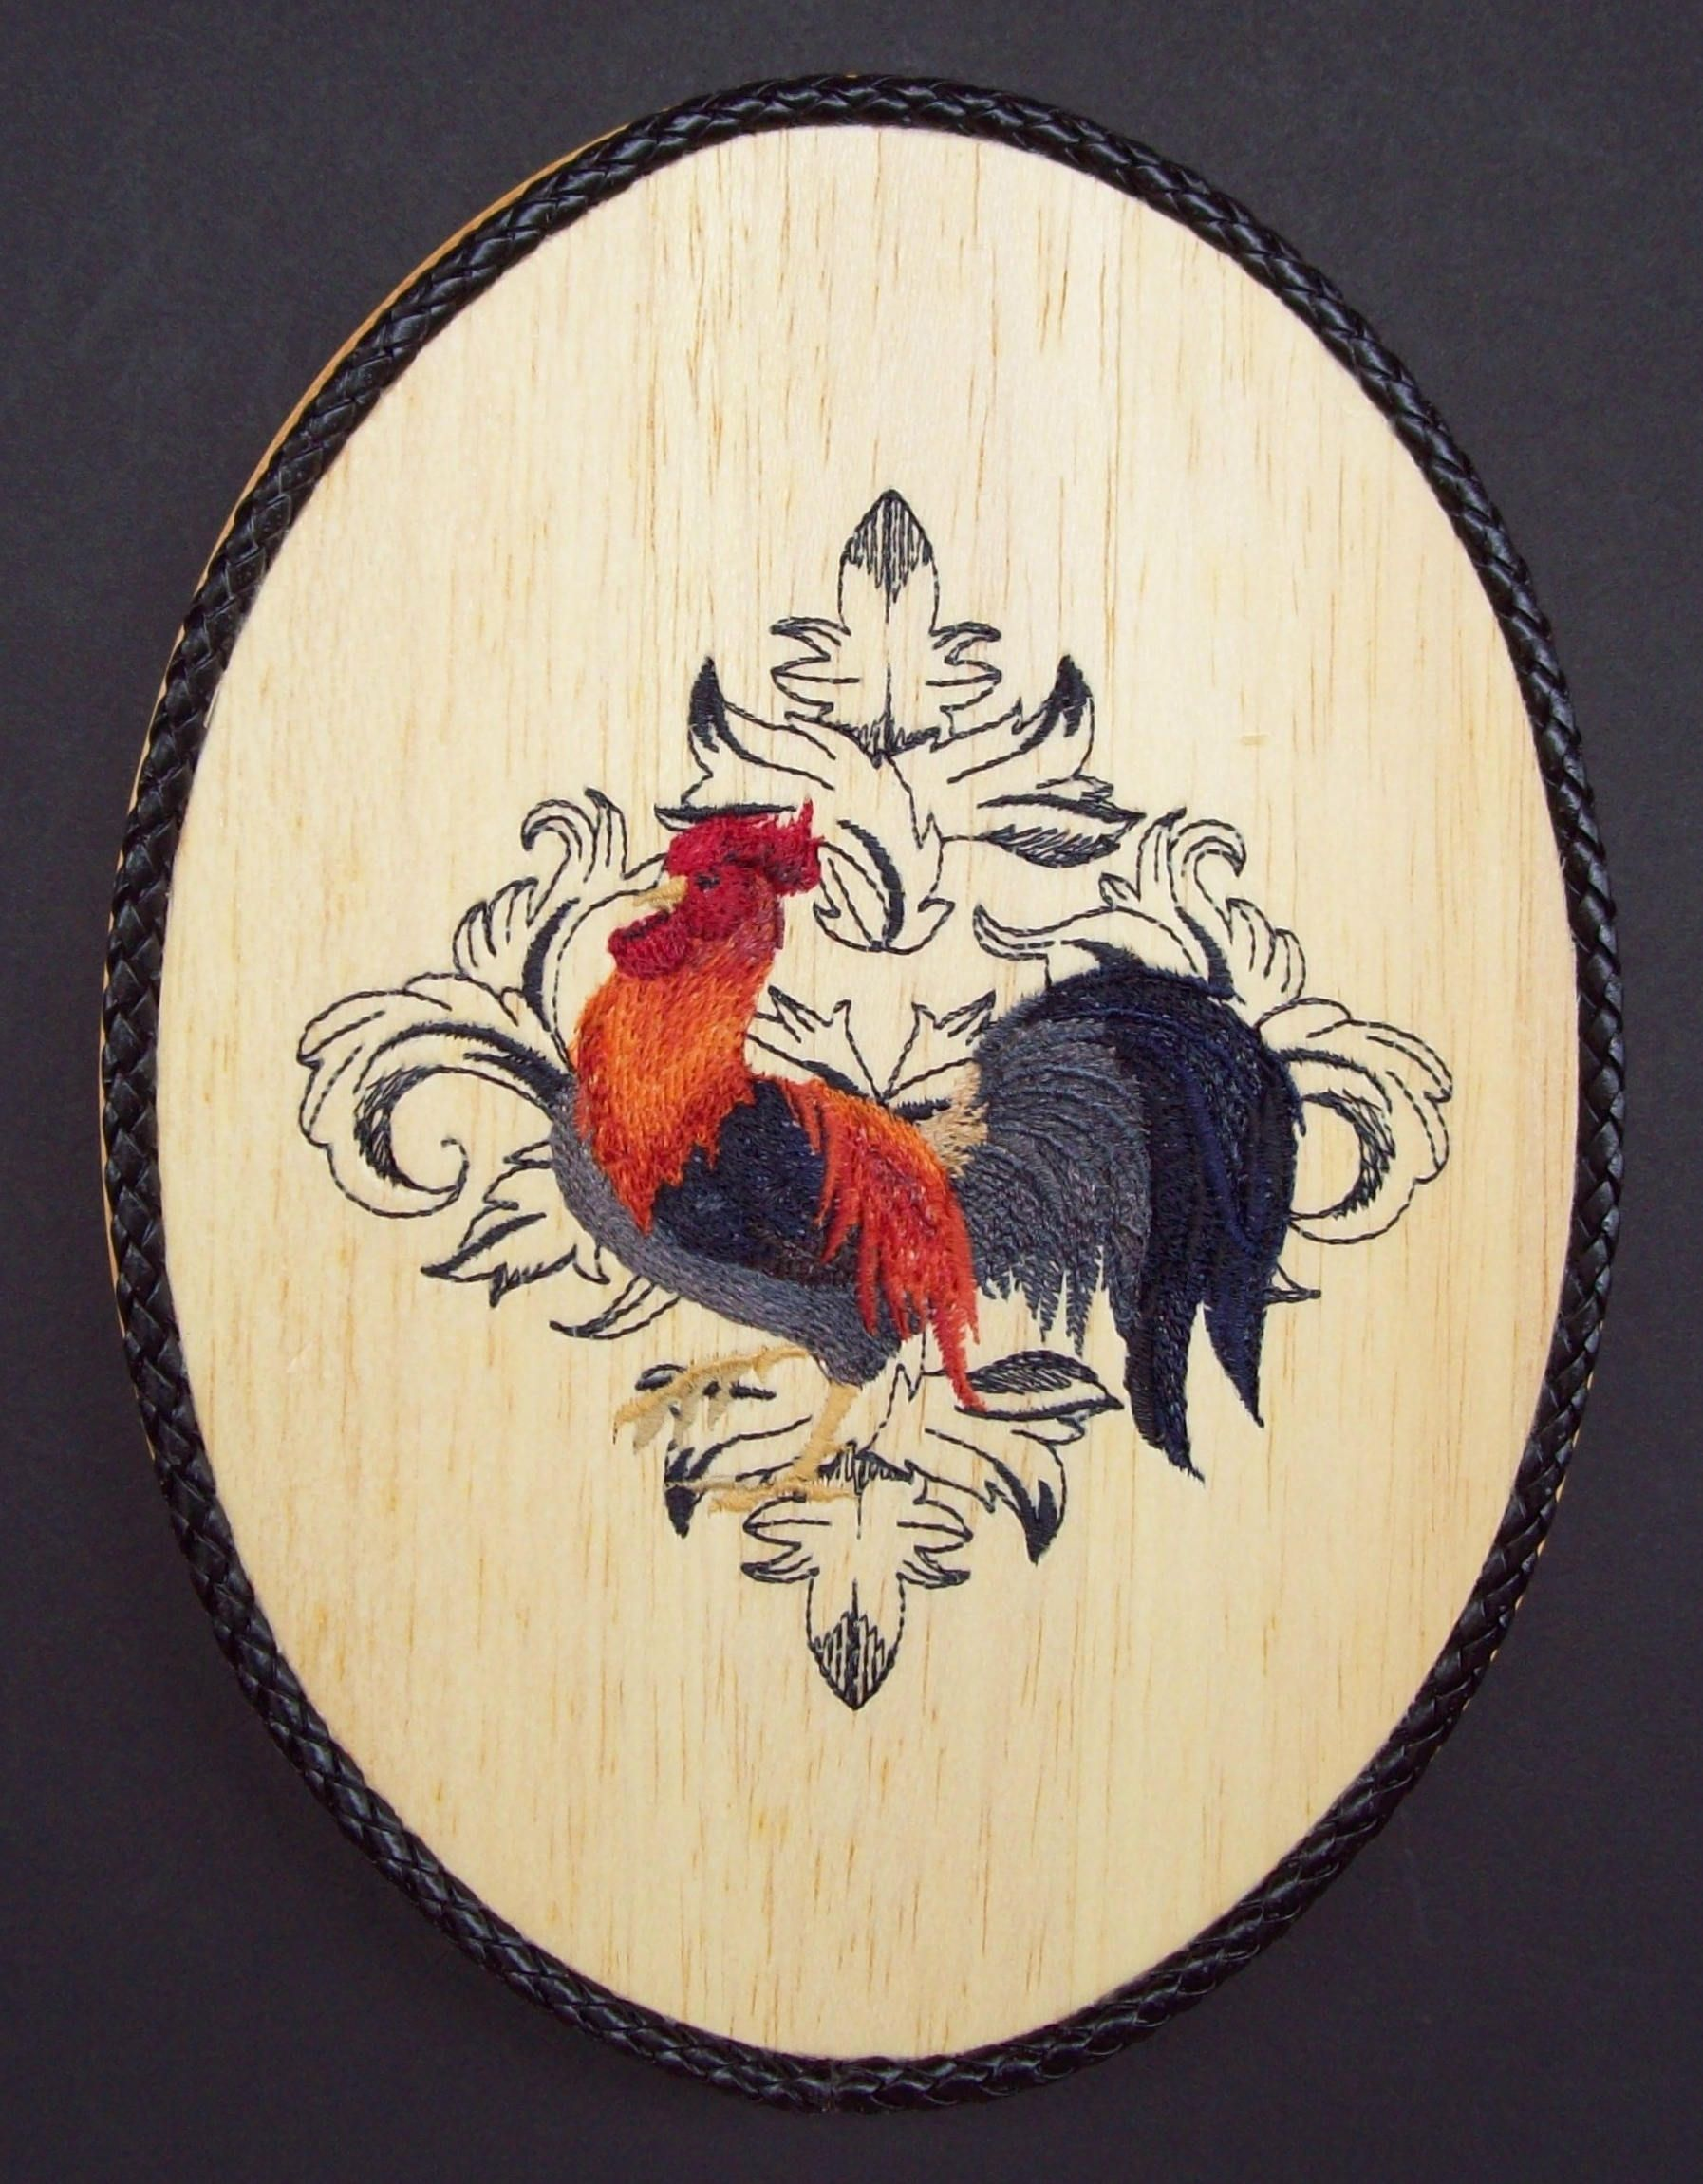 Gallic rooster embroidery wood art kitchen wall decor country